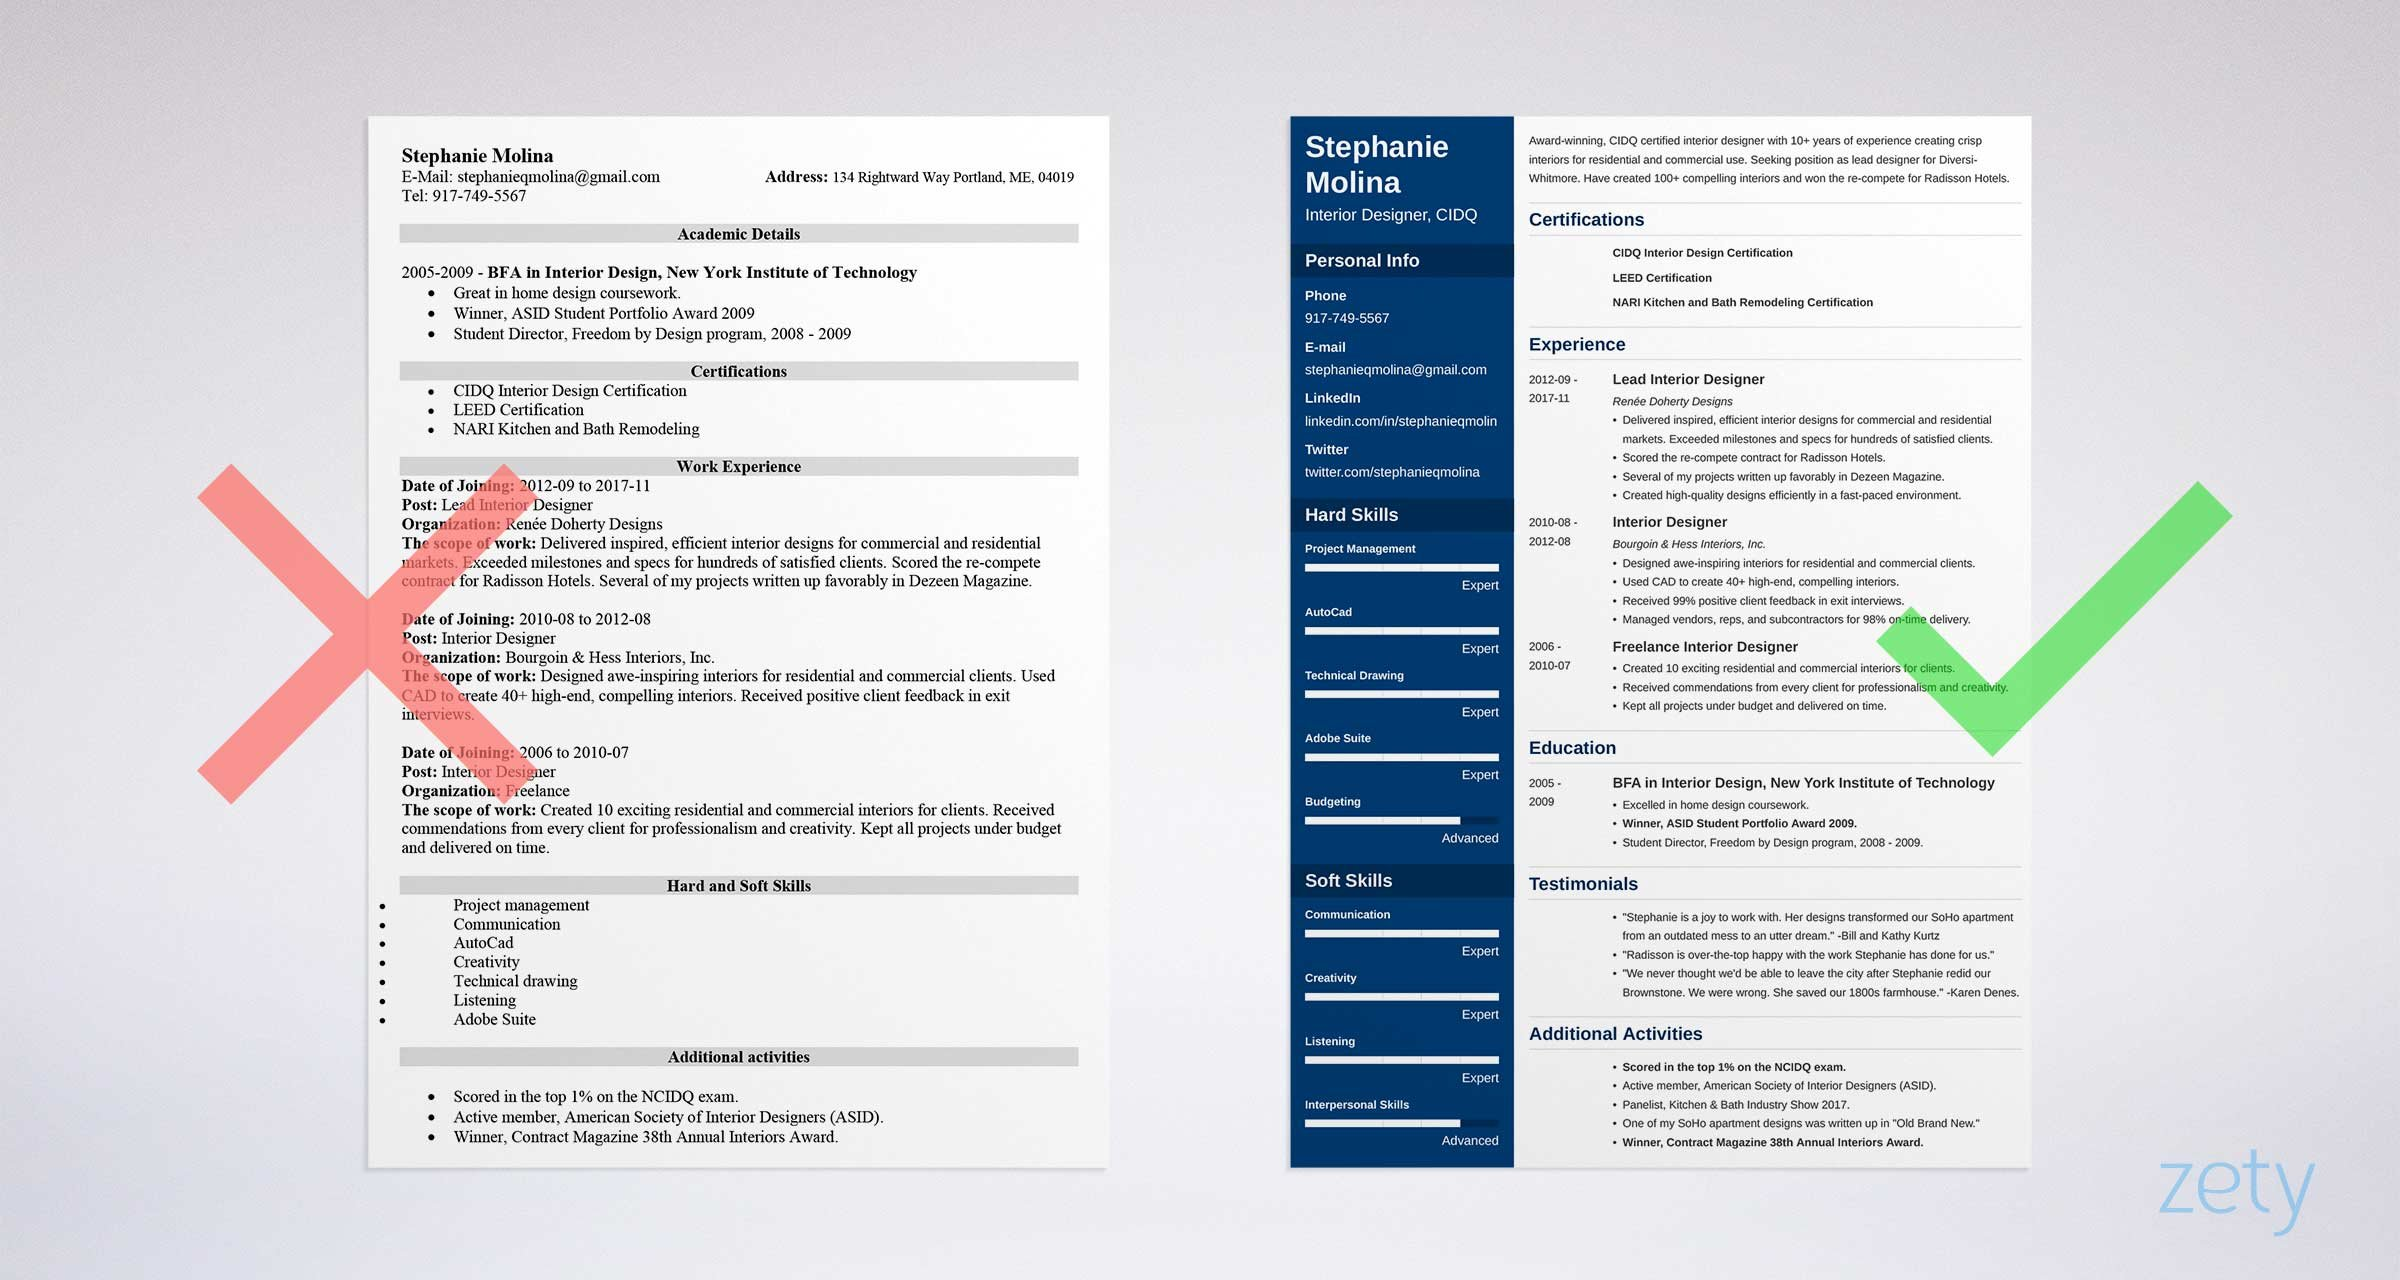 Free Resume Templates: 18 Downloadable Resume Templates to Use